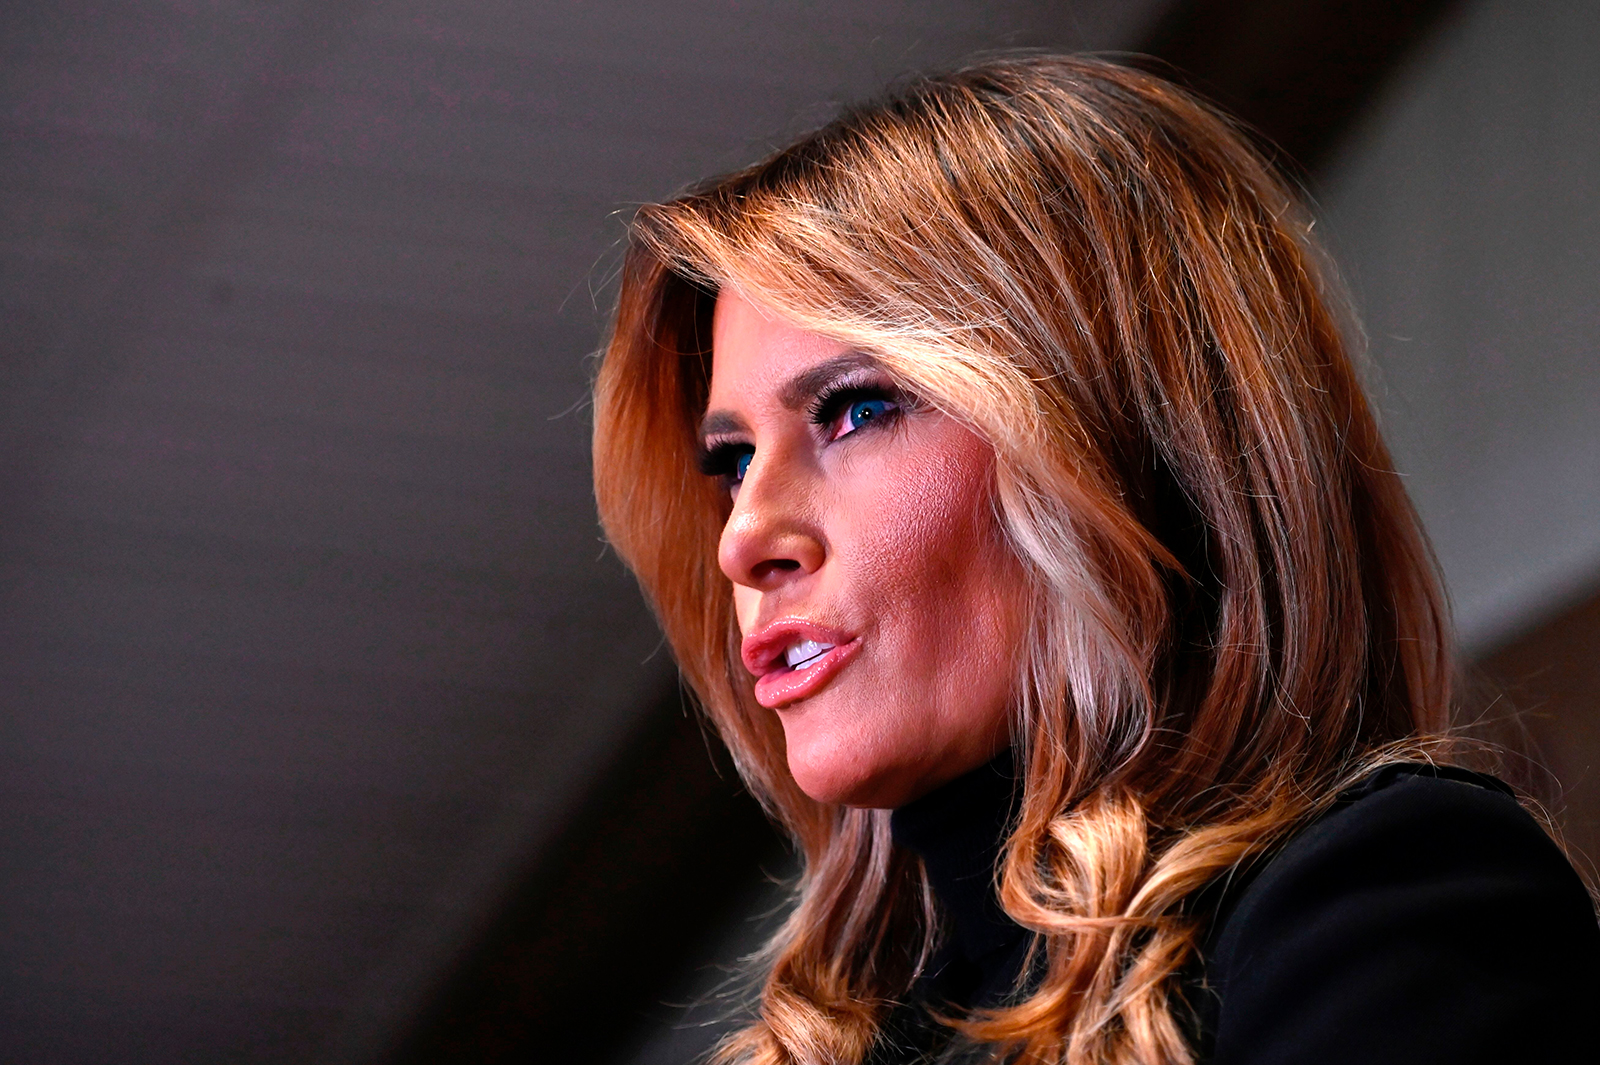 US First Lady Melania Trump speaks during a campaign rally at Whitewoods venue in Wapwallopen, Pennsylvania on October 31.